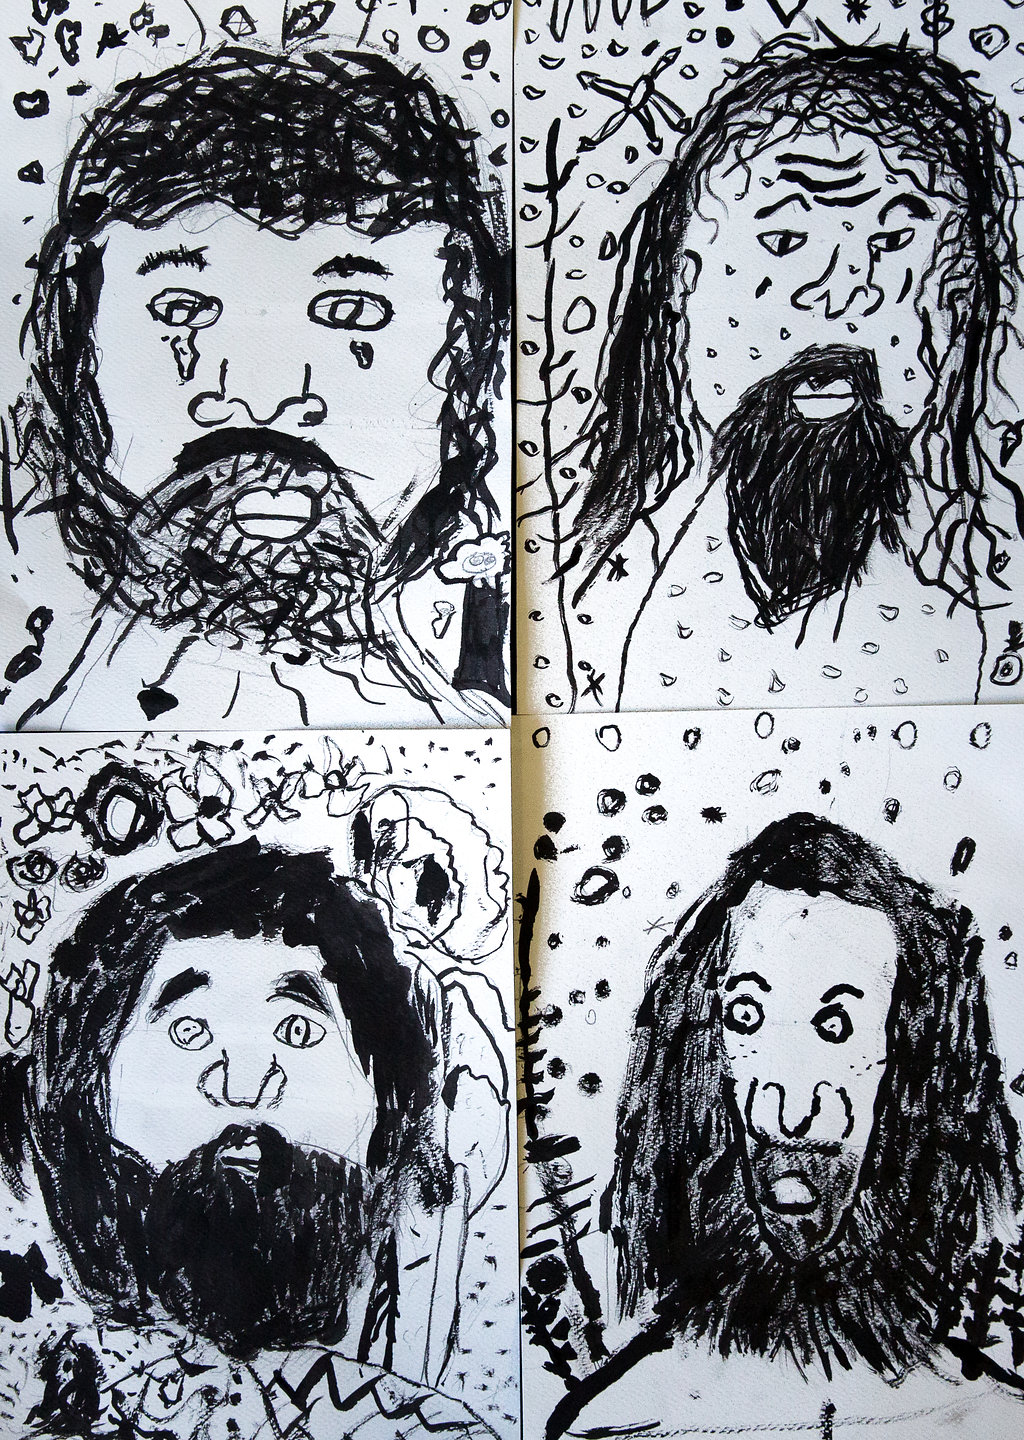 Book character drawings in brush and ink